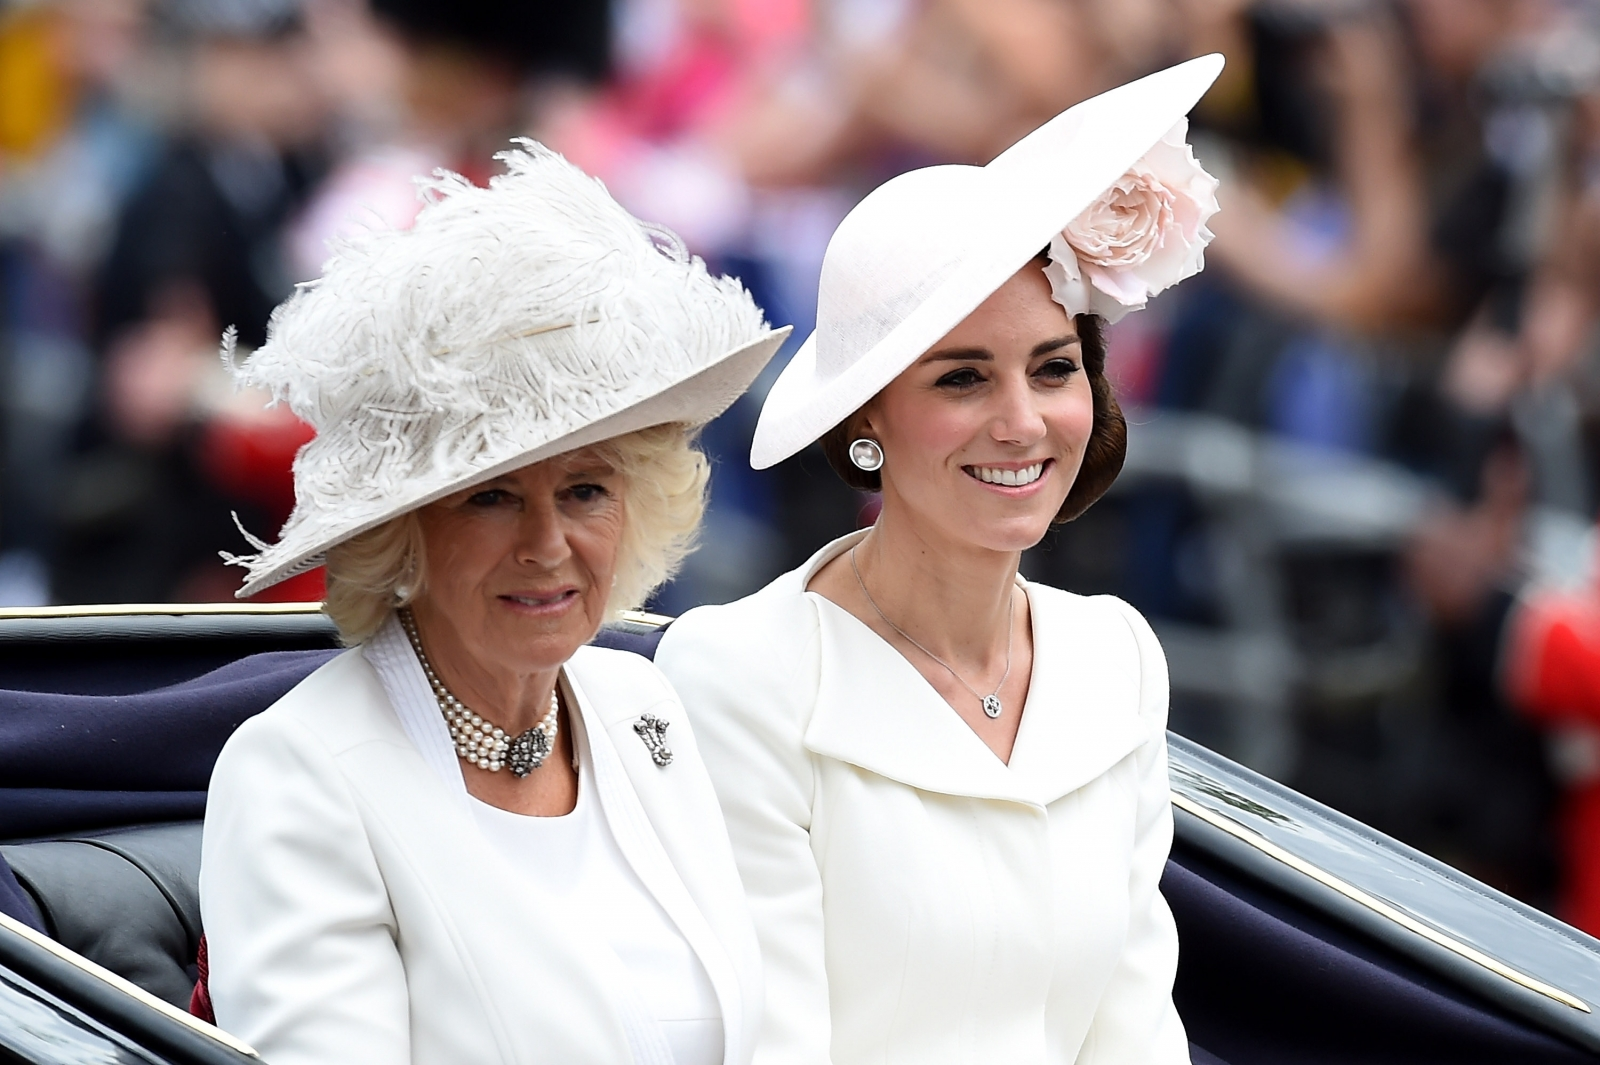 Kate Middleton and Camilla Parker Bowles